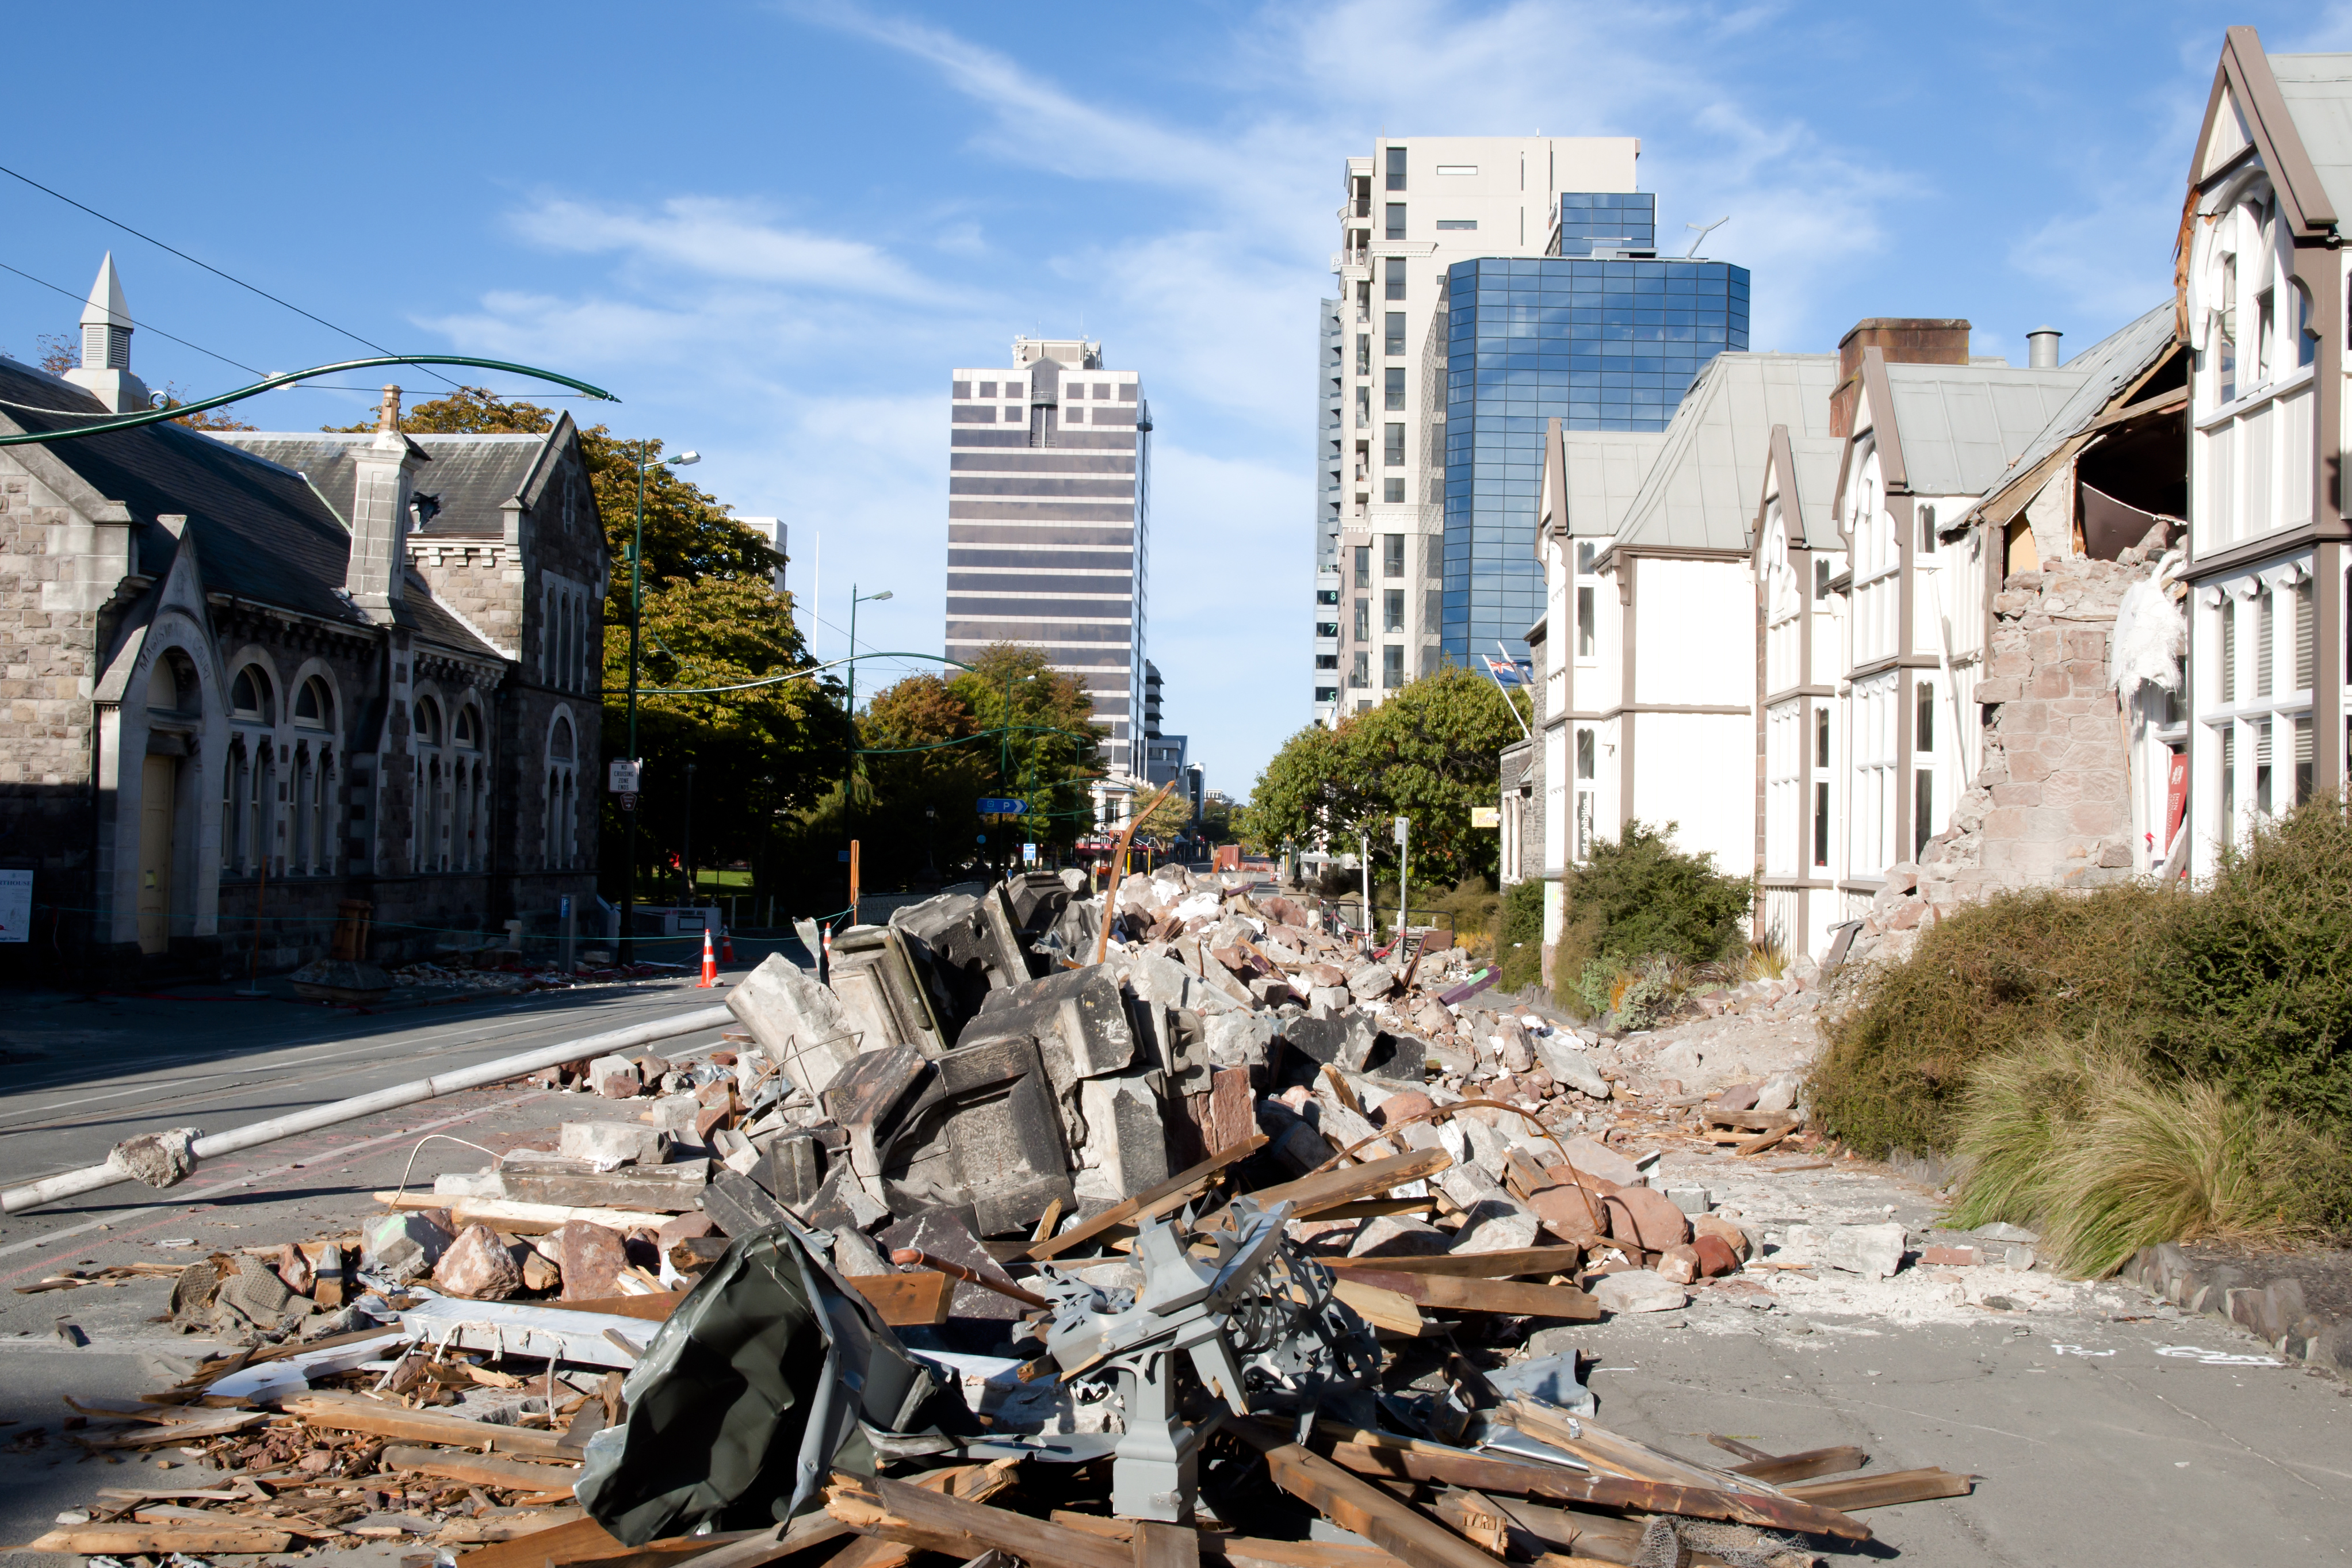 Pile of rubble in the street, houses with the front falling down due to earthquake. Office towers in the background.